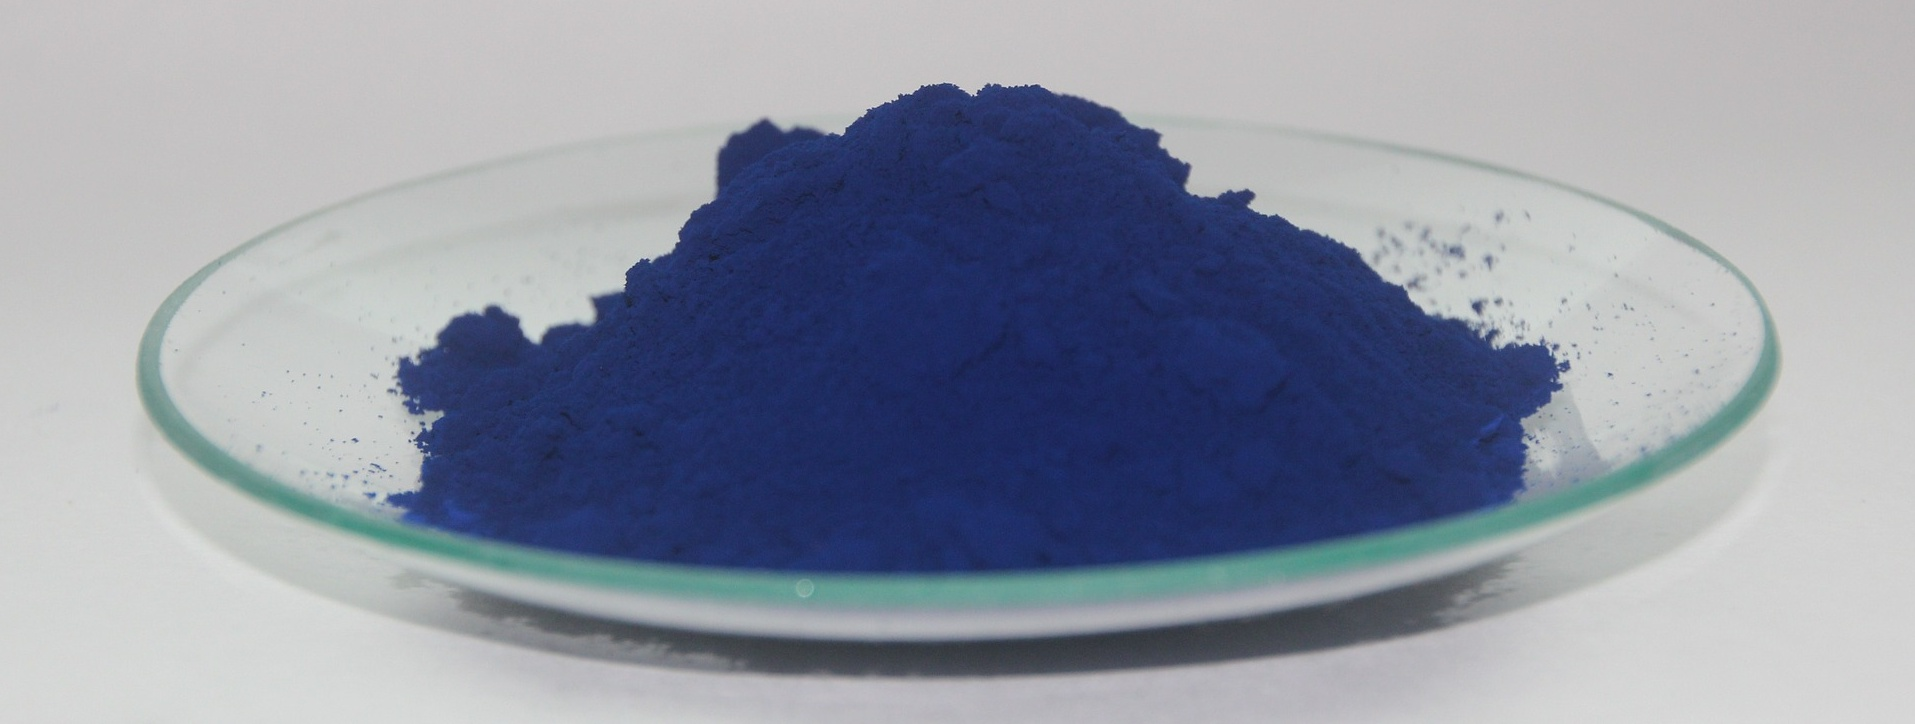 indigo, dye, pigment, blue dye, food coloring, artificial coloring